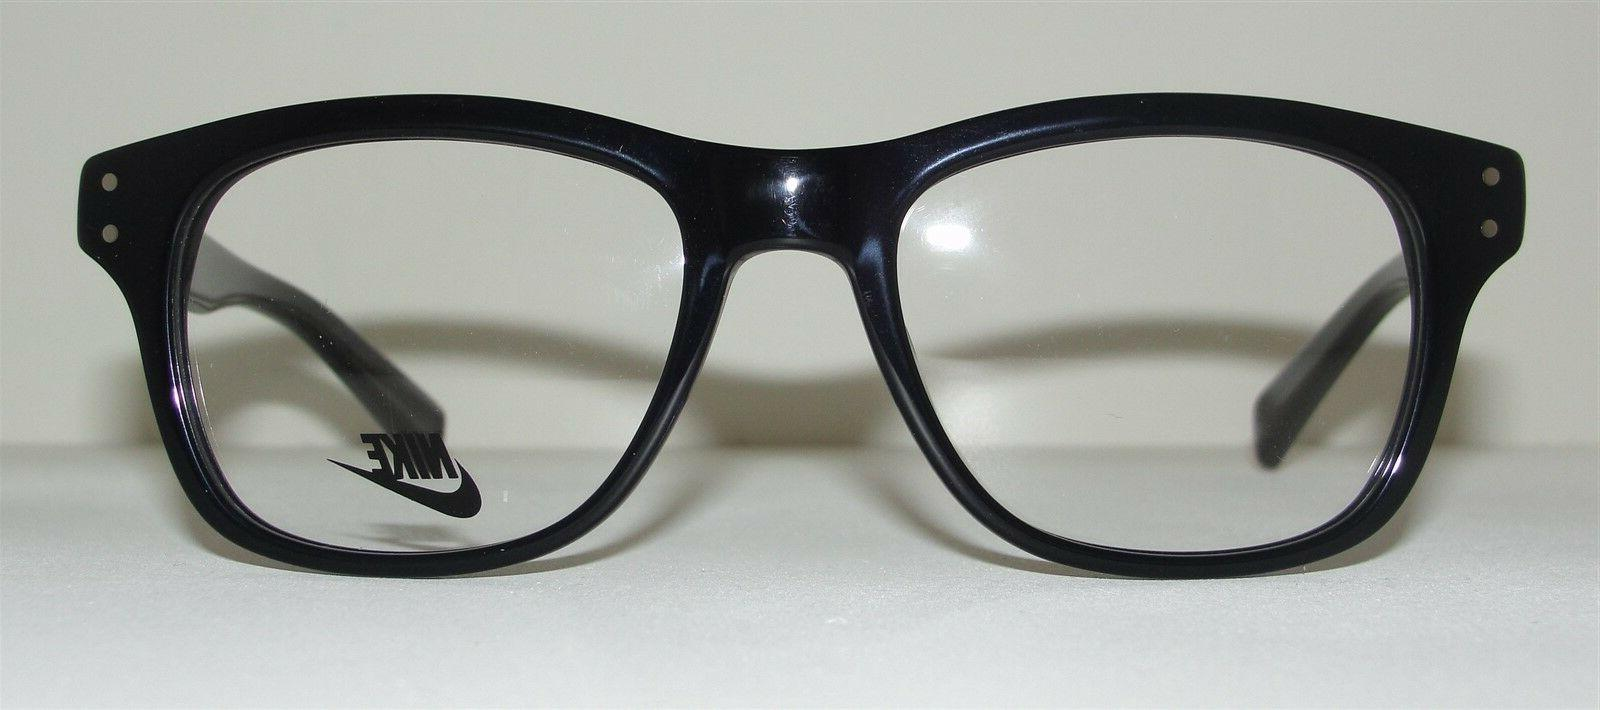 new mens eyeglasses 7203 010 black retro